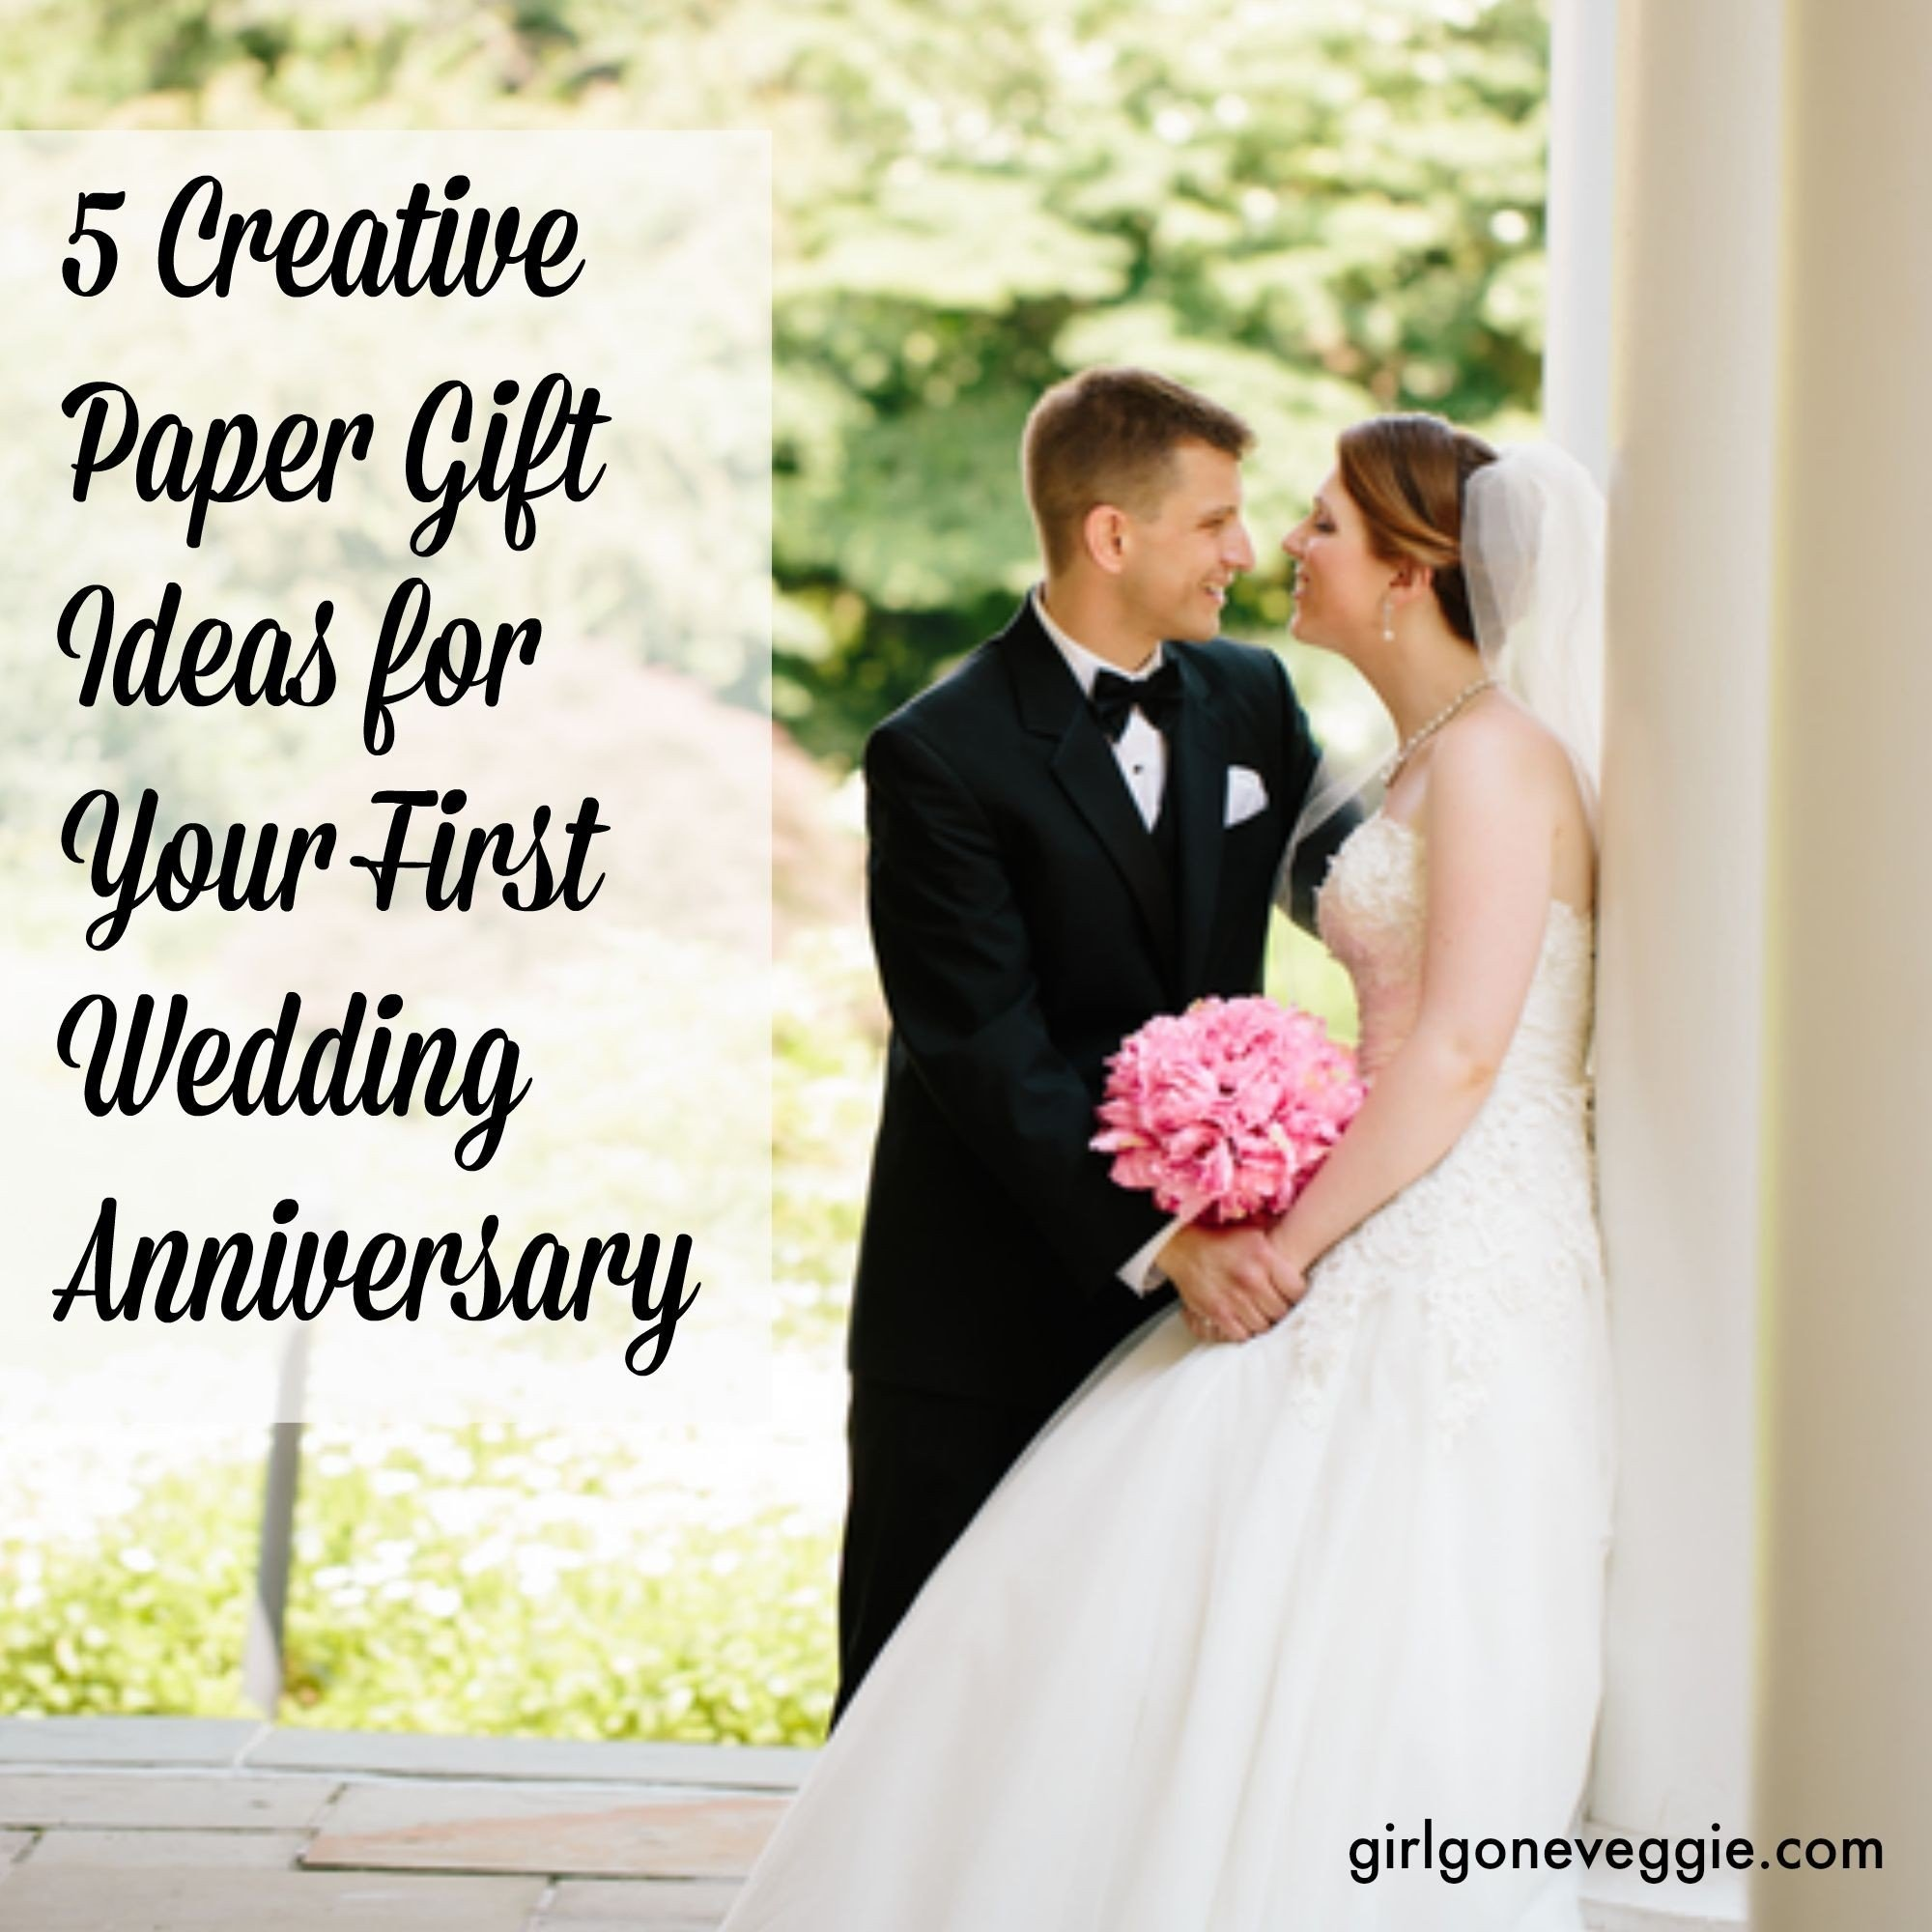 10 Elegant First Wedding Anniversary Gift Ideas For Wife first wedding anniversary gift ideas for her awesome 5 creative